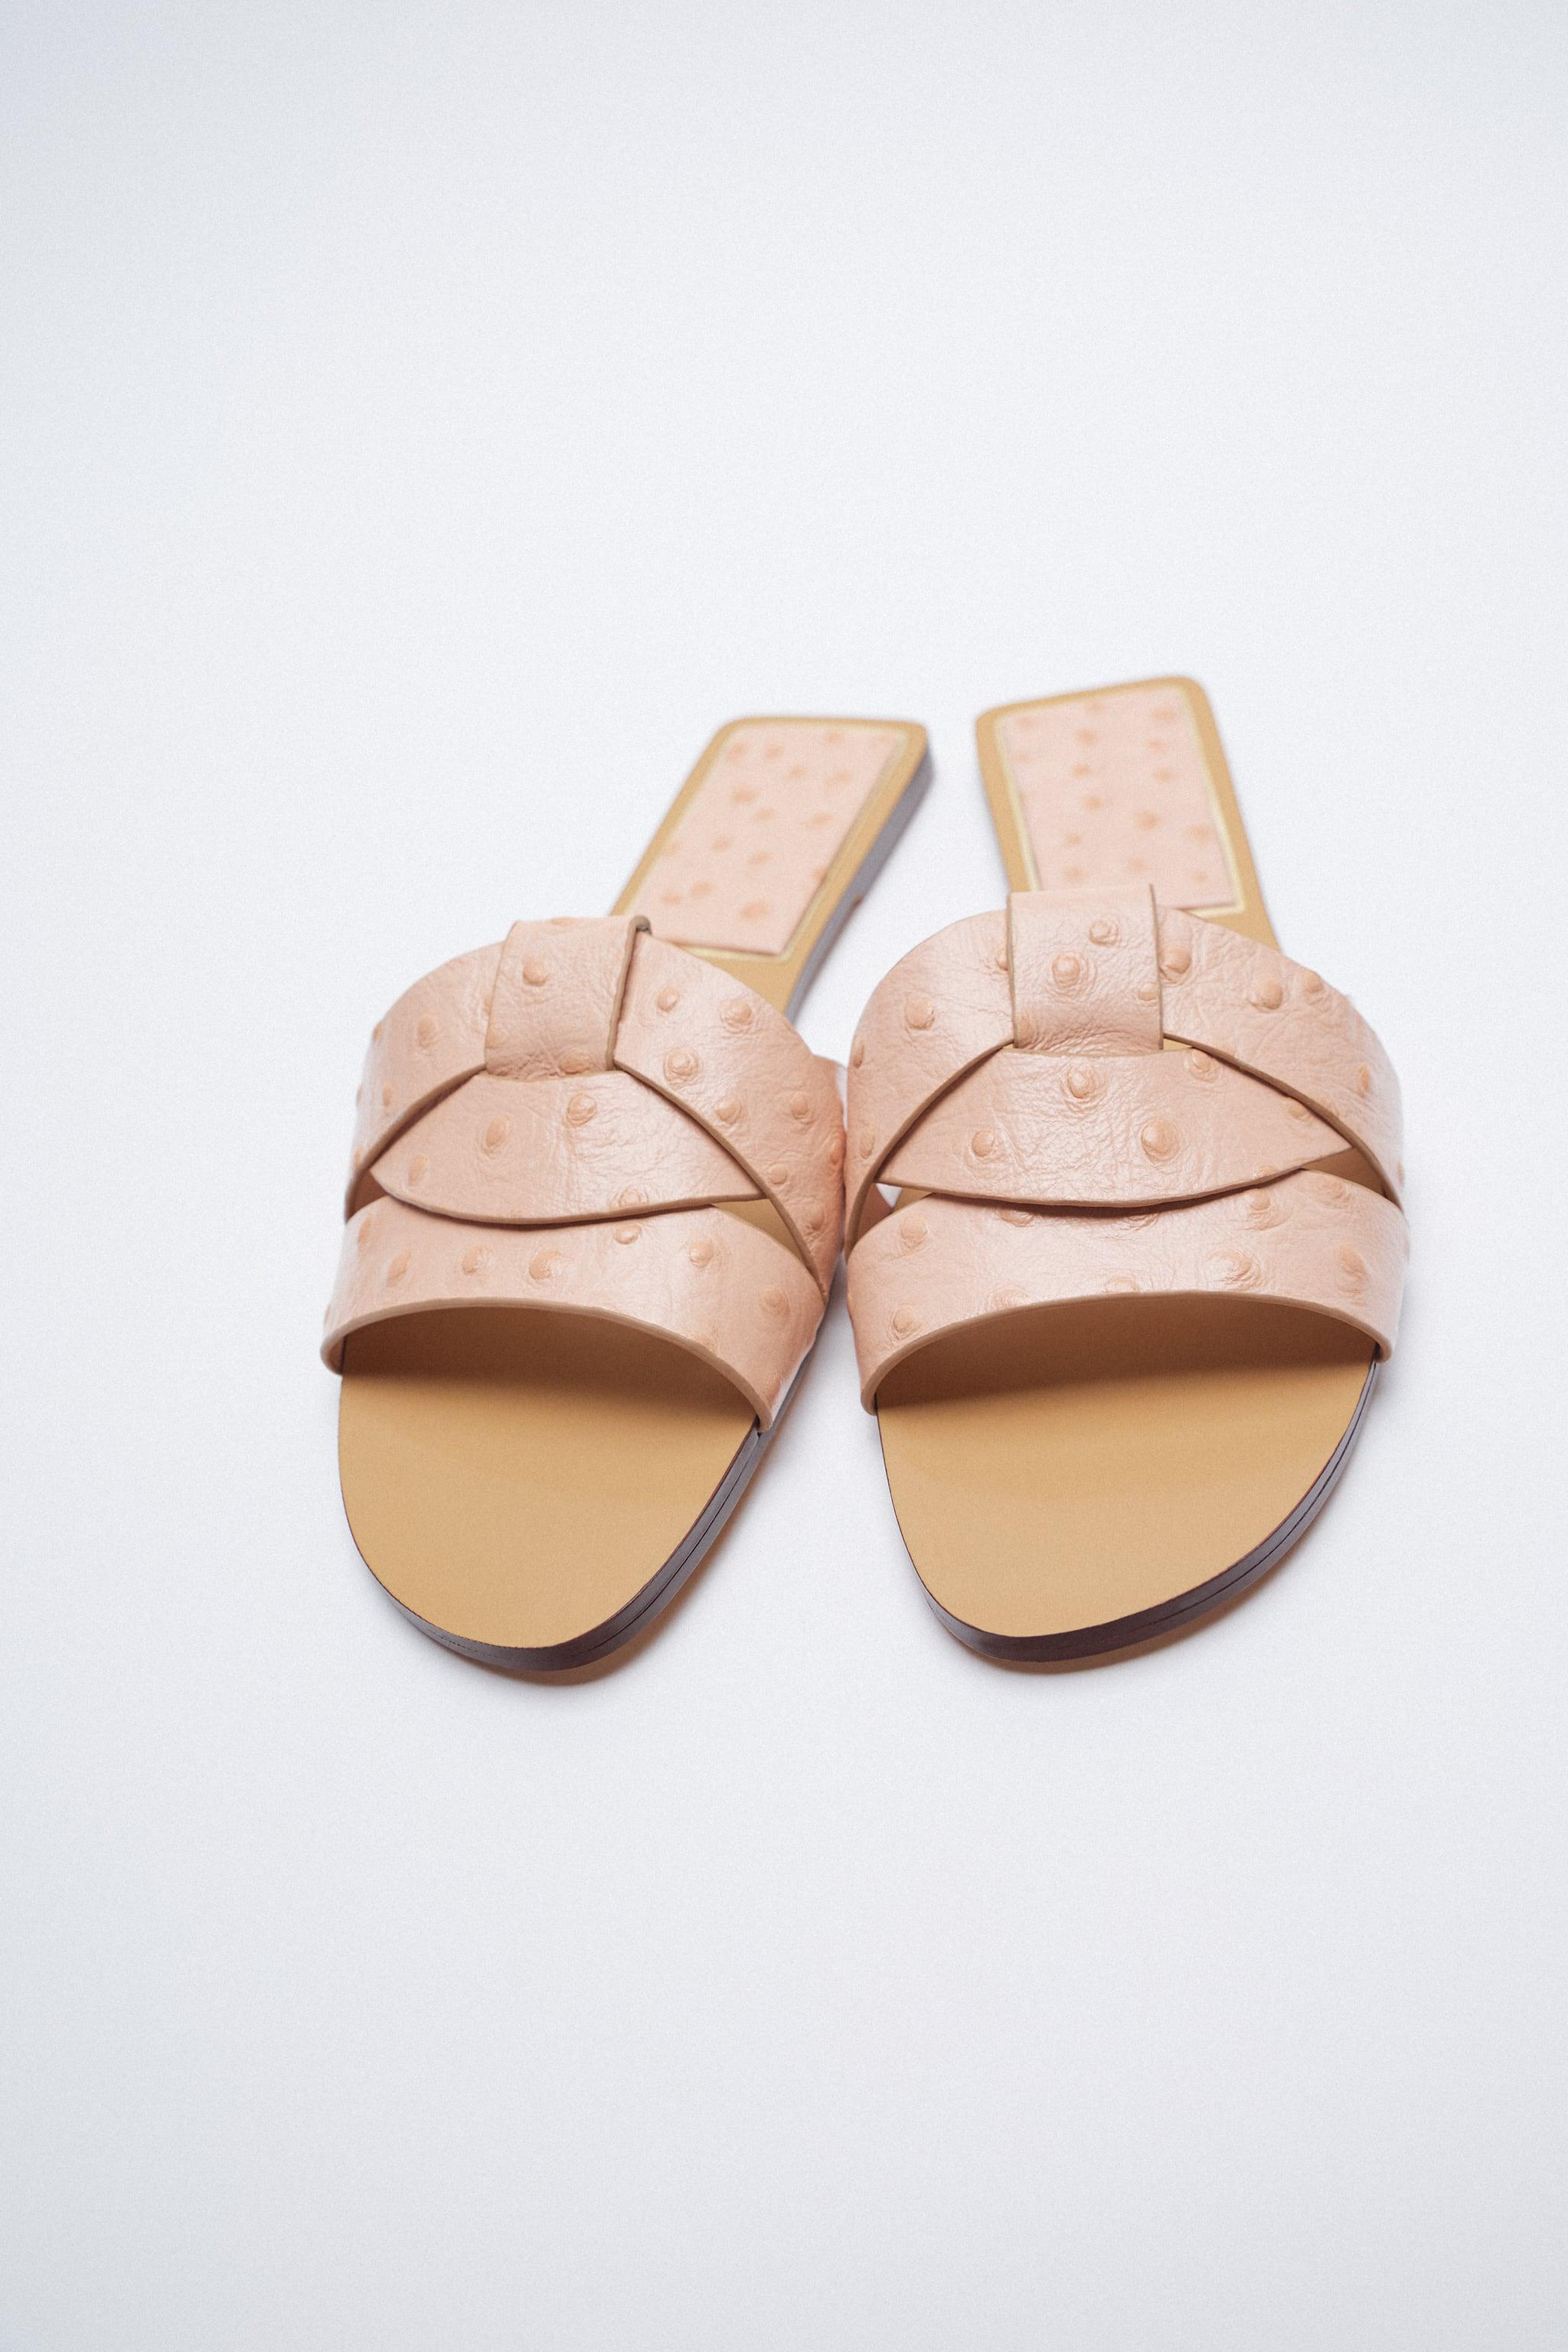 LOW HEELED CROSSED LEATHER SANDALS 1